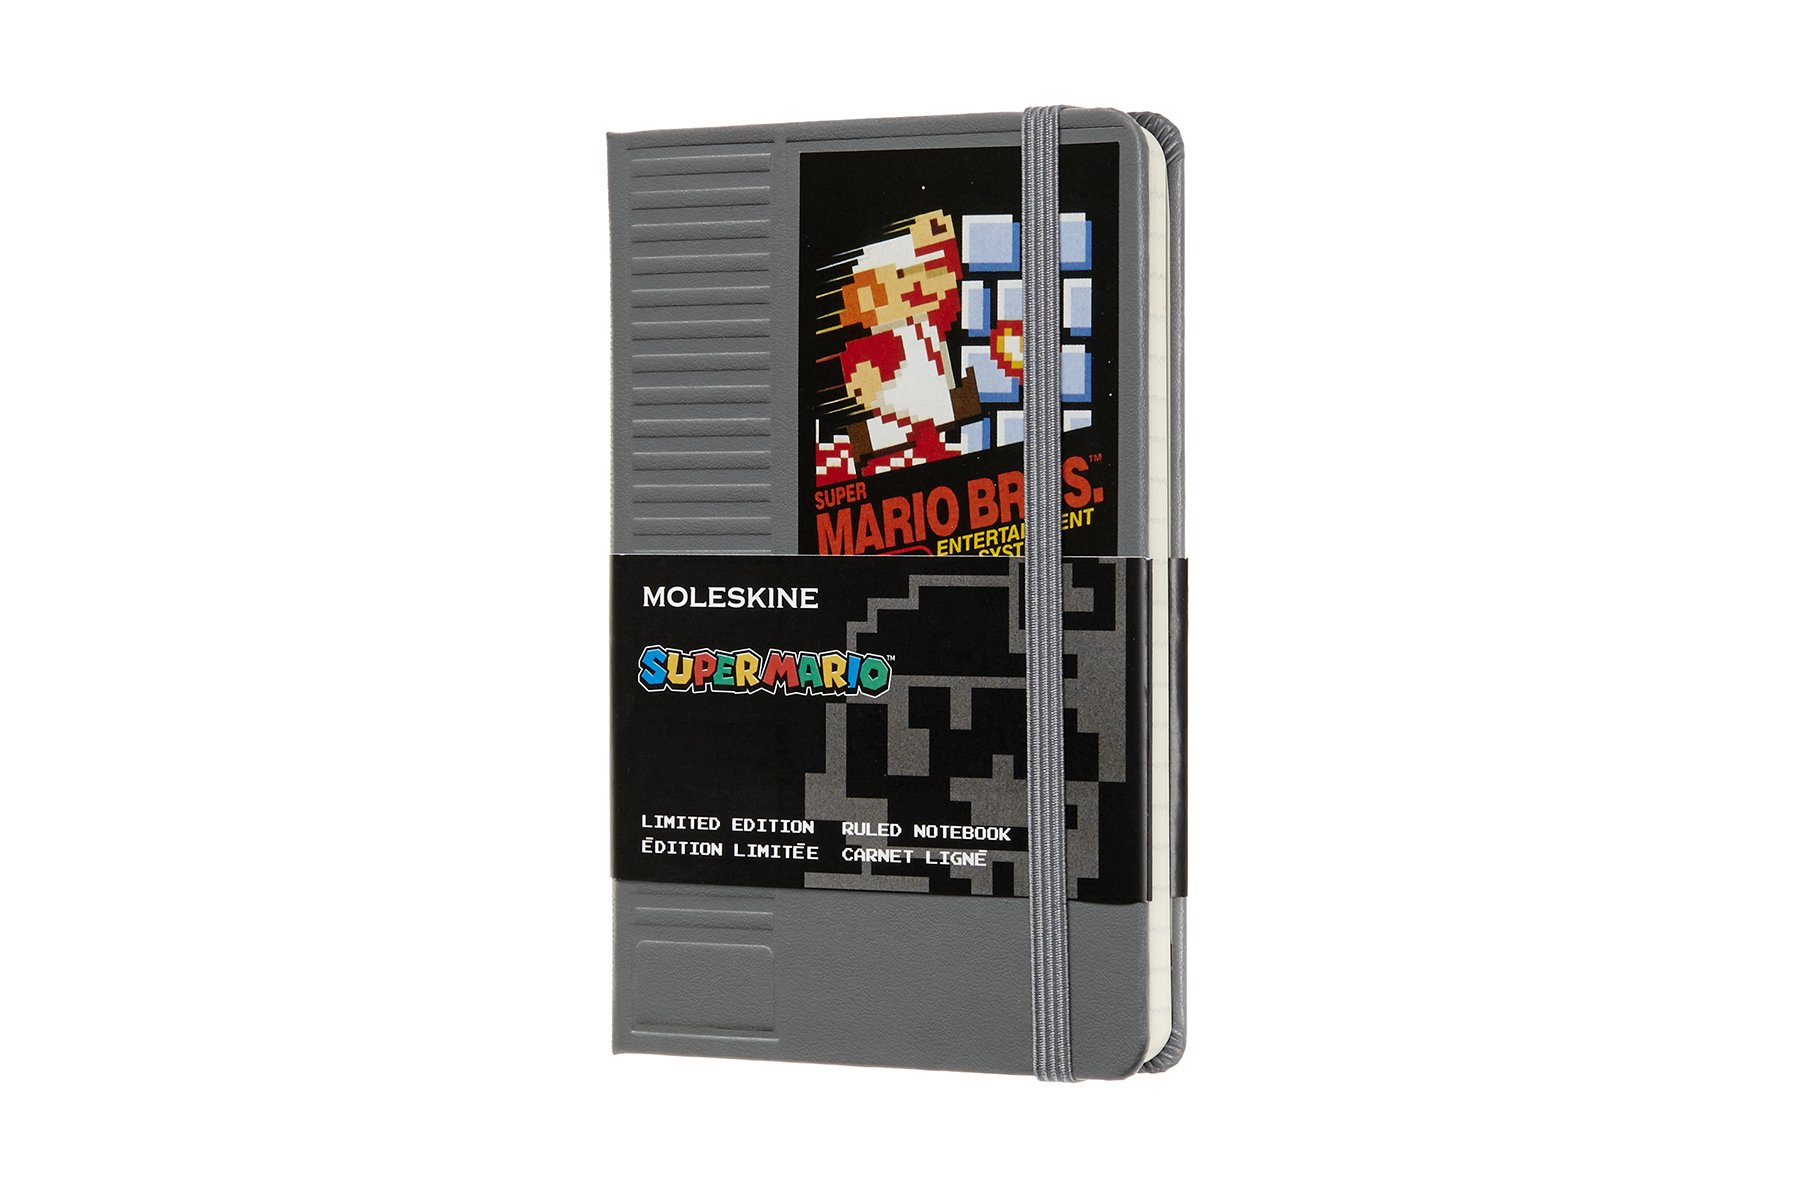 Moleskine Limited Edition Super Mario Hard Cover Notebook,..